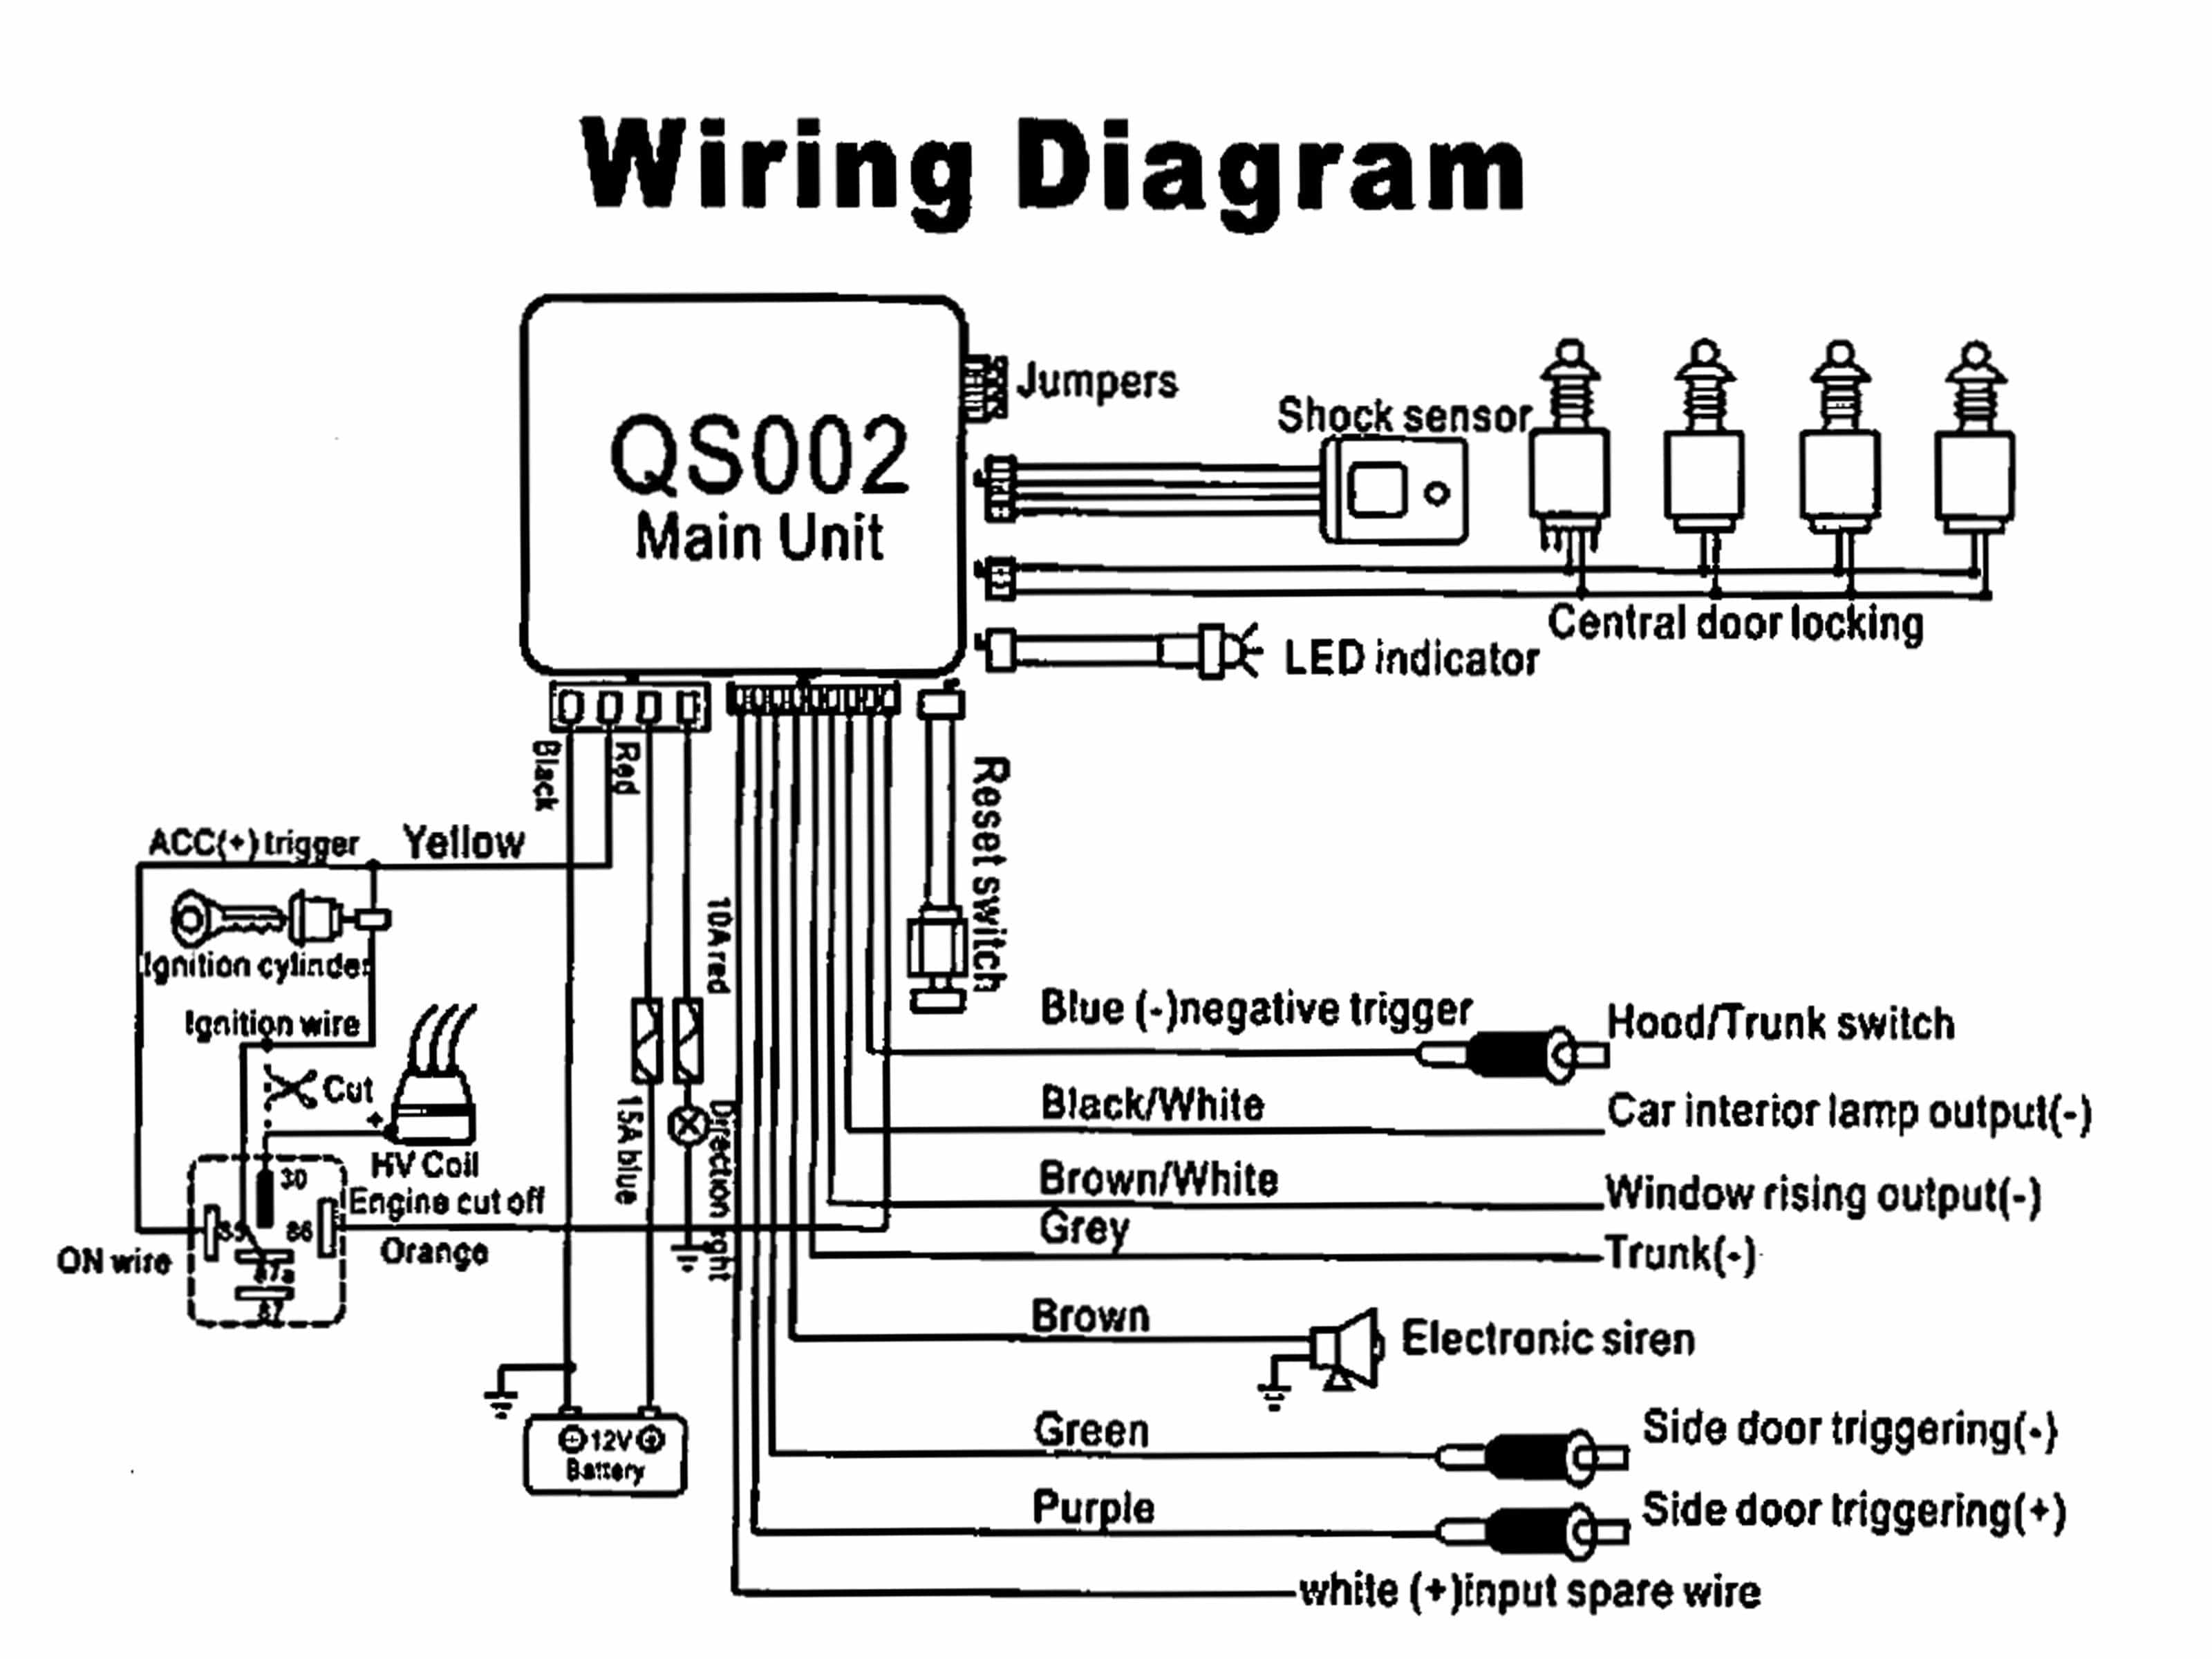 AlarmInstructions_7a98a2bc d189 4c5b 99b3 c774abdbef28 clarion cmd5 wiring diagram wiring diagram shrutiradio  at metegol.co